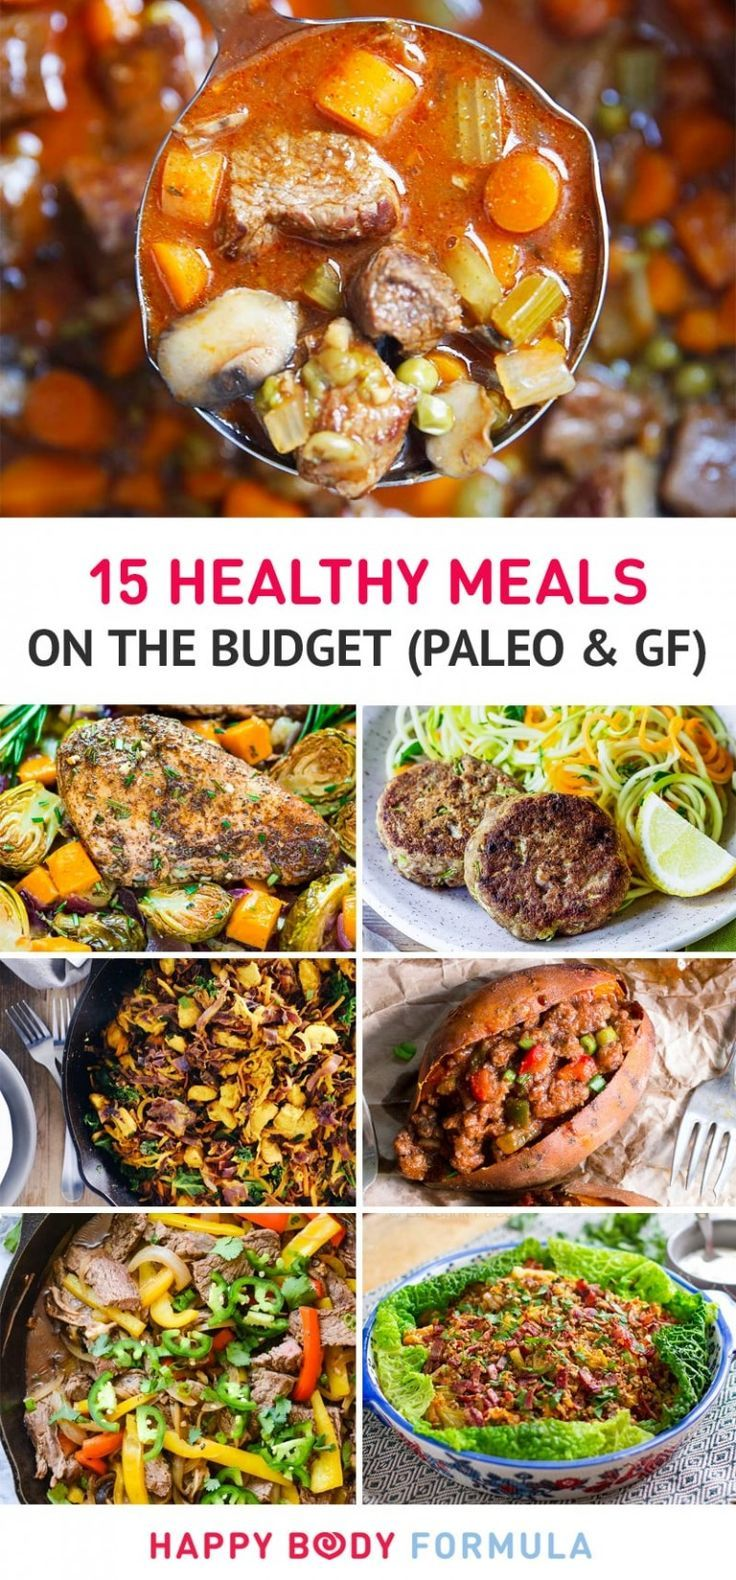 15 Healthy Meals On A Budget (Paleo, Gluten-Free) images